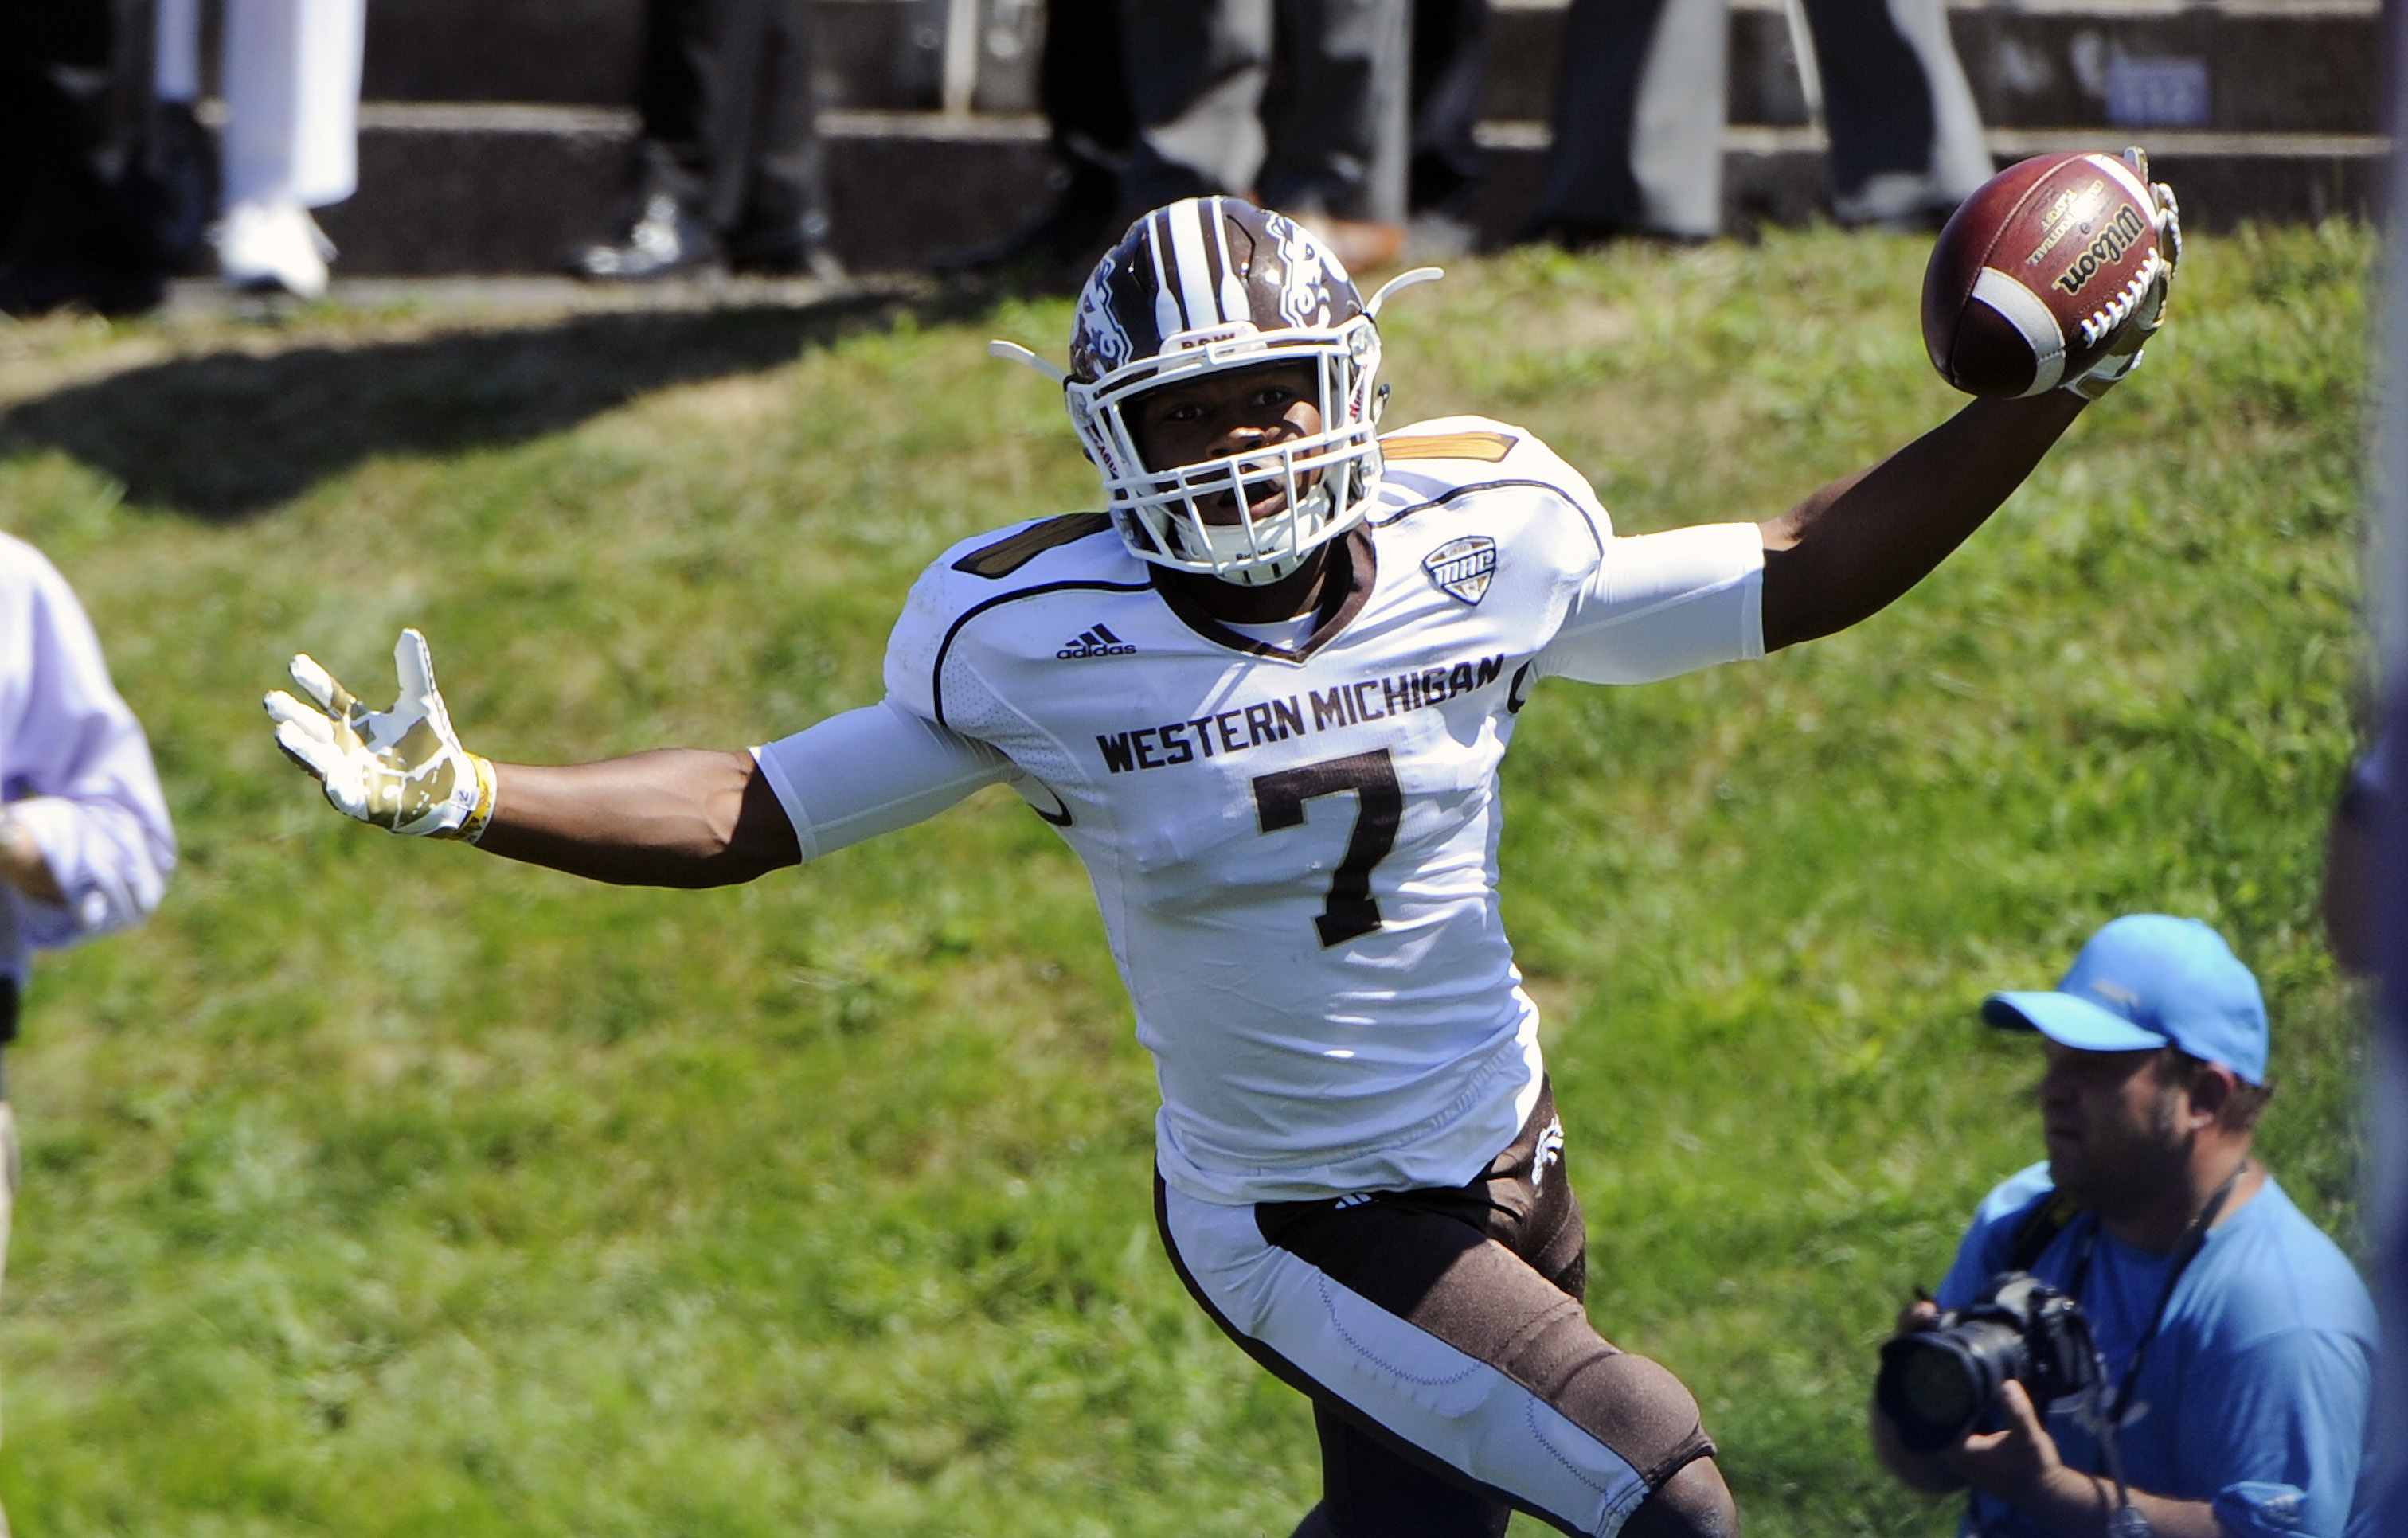 Bluffton's D'Wayne Eskridge makes immediate impact at Western Michigan